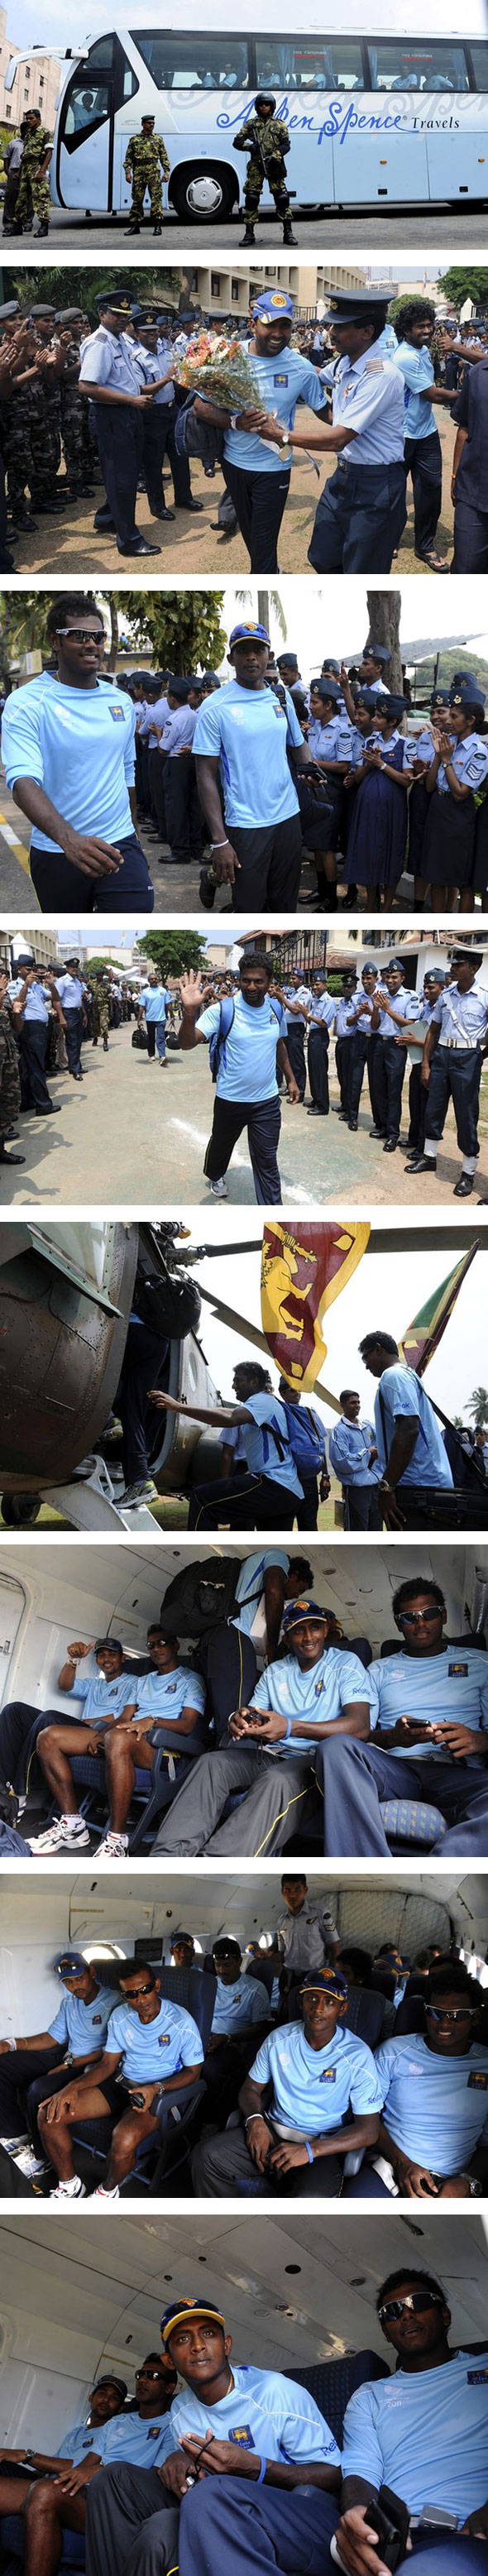 Sri Lanka depart for World Cup opener in Hambantota in helicopter